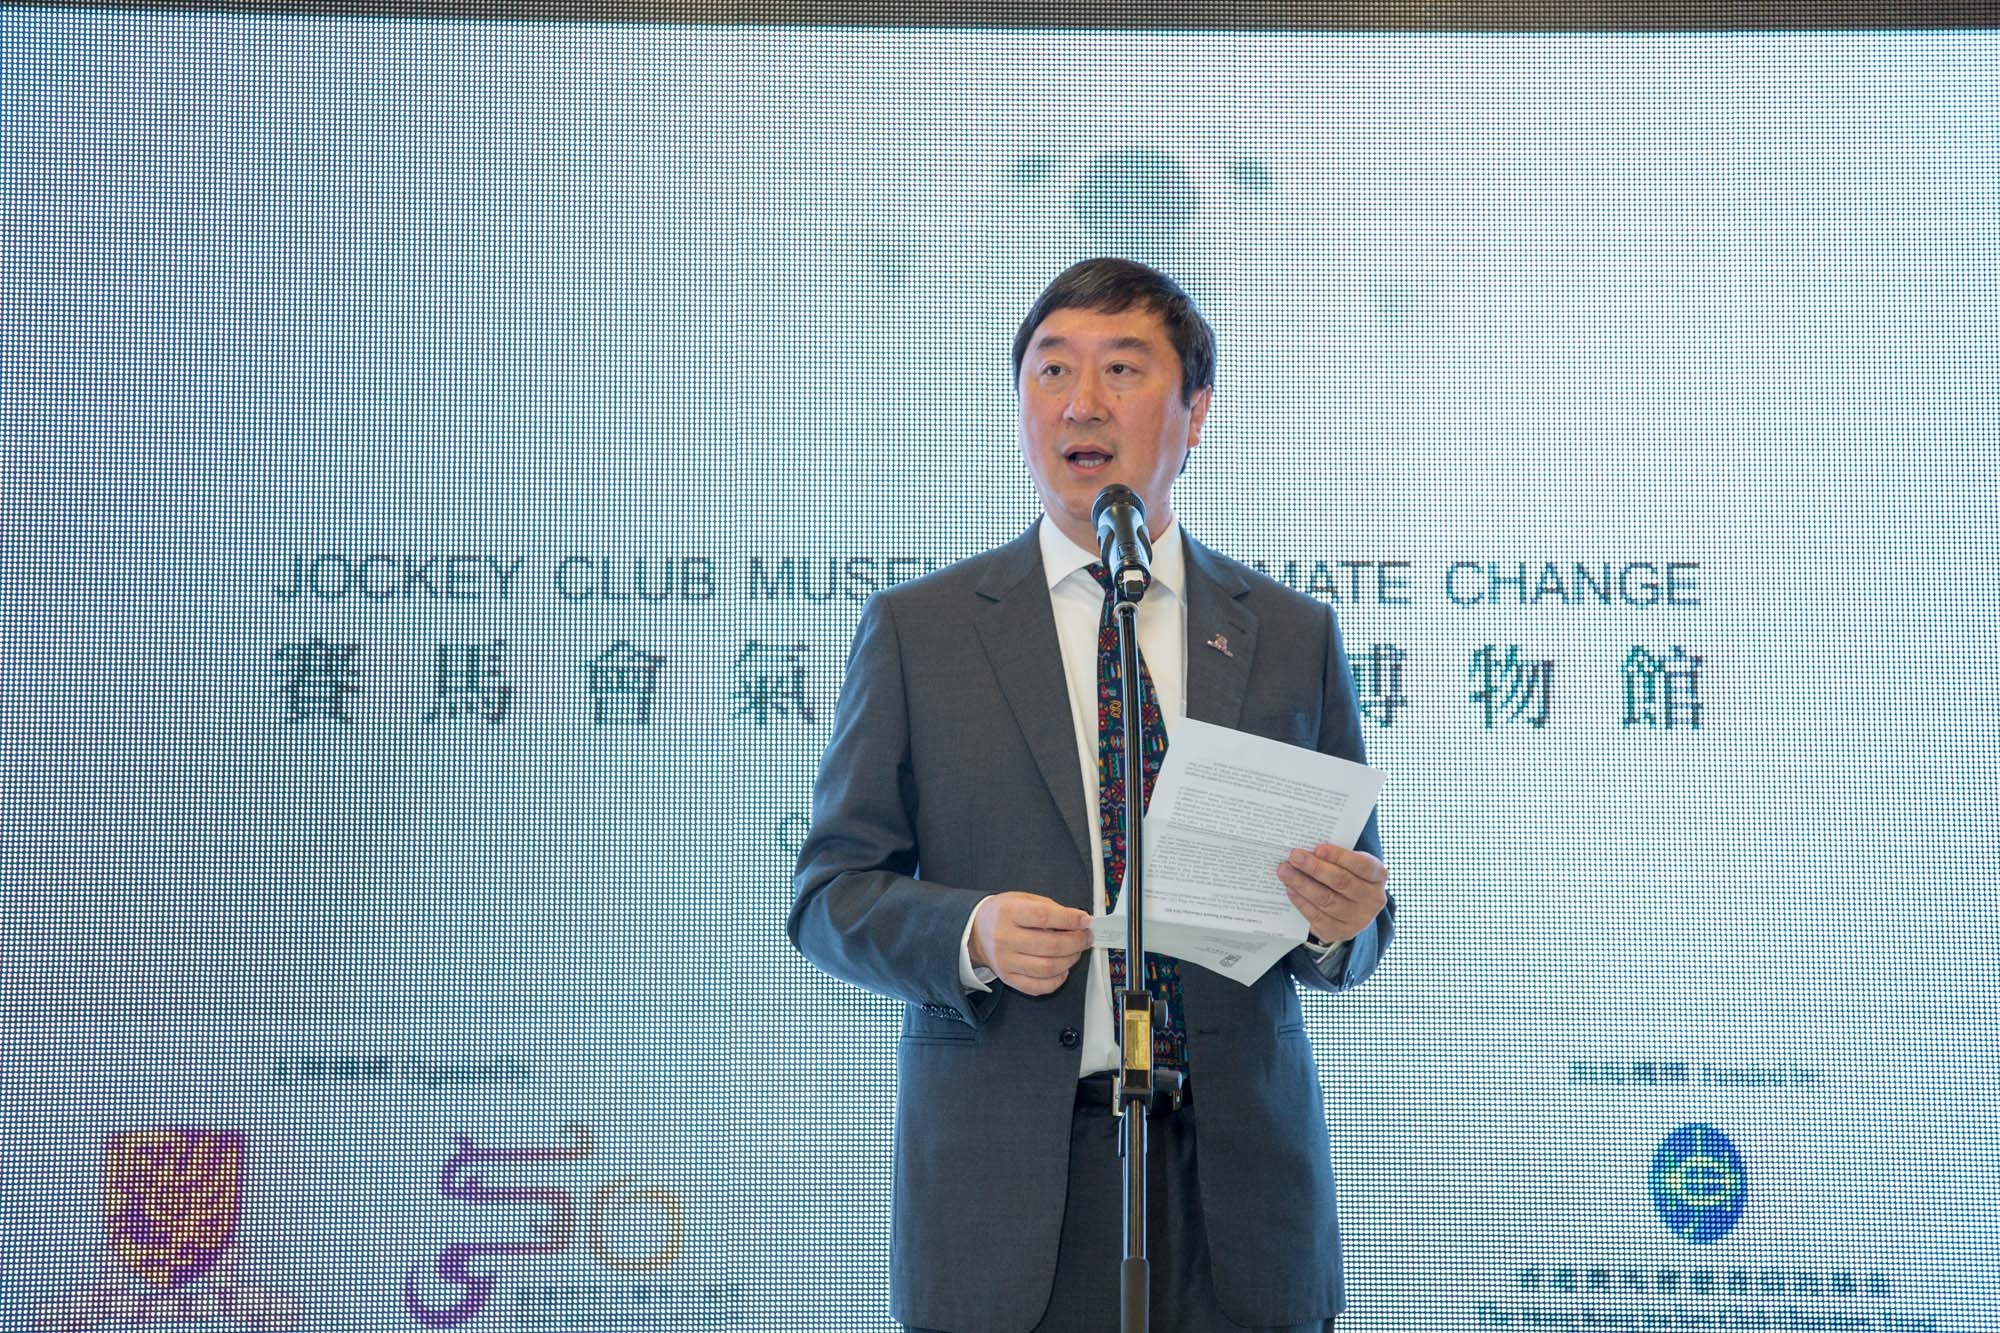 Prof Joseph J Y SUNG, Vice-Chancellor and President of CUHK, gives a speech.